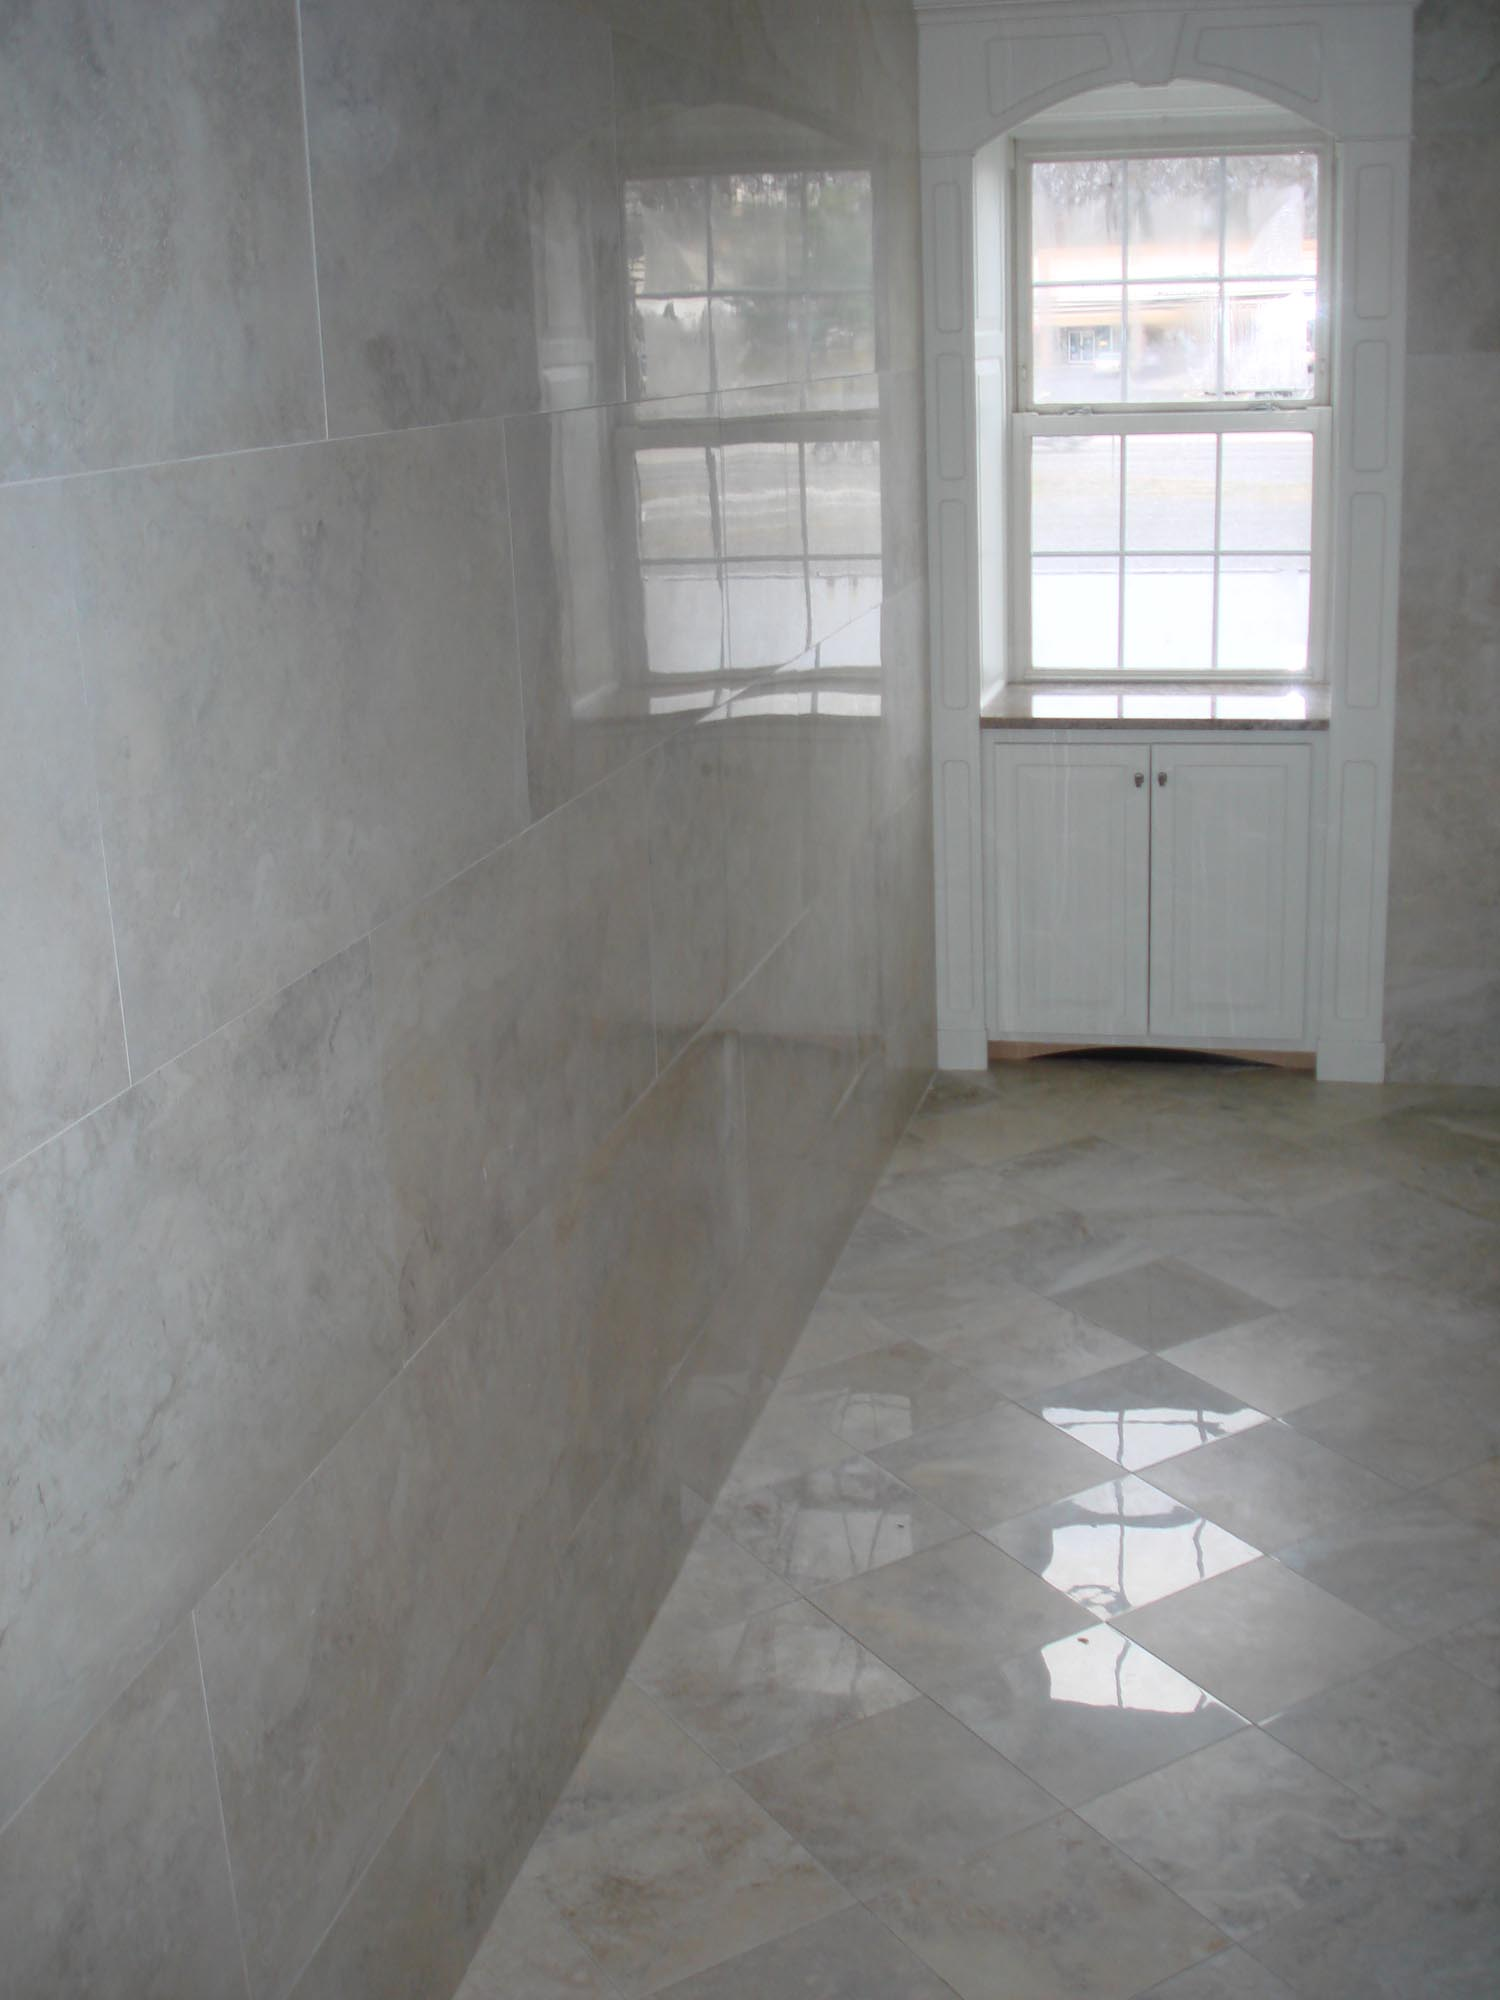 Porcelain Tile Restroom 18x36 On Walls And 12x12 Polished